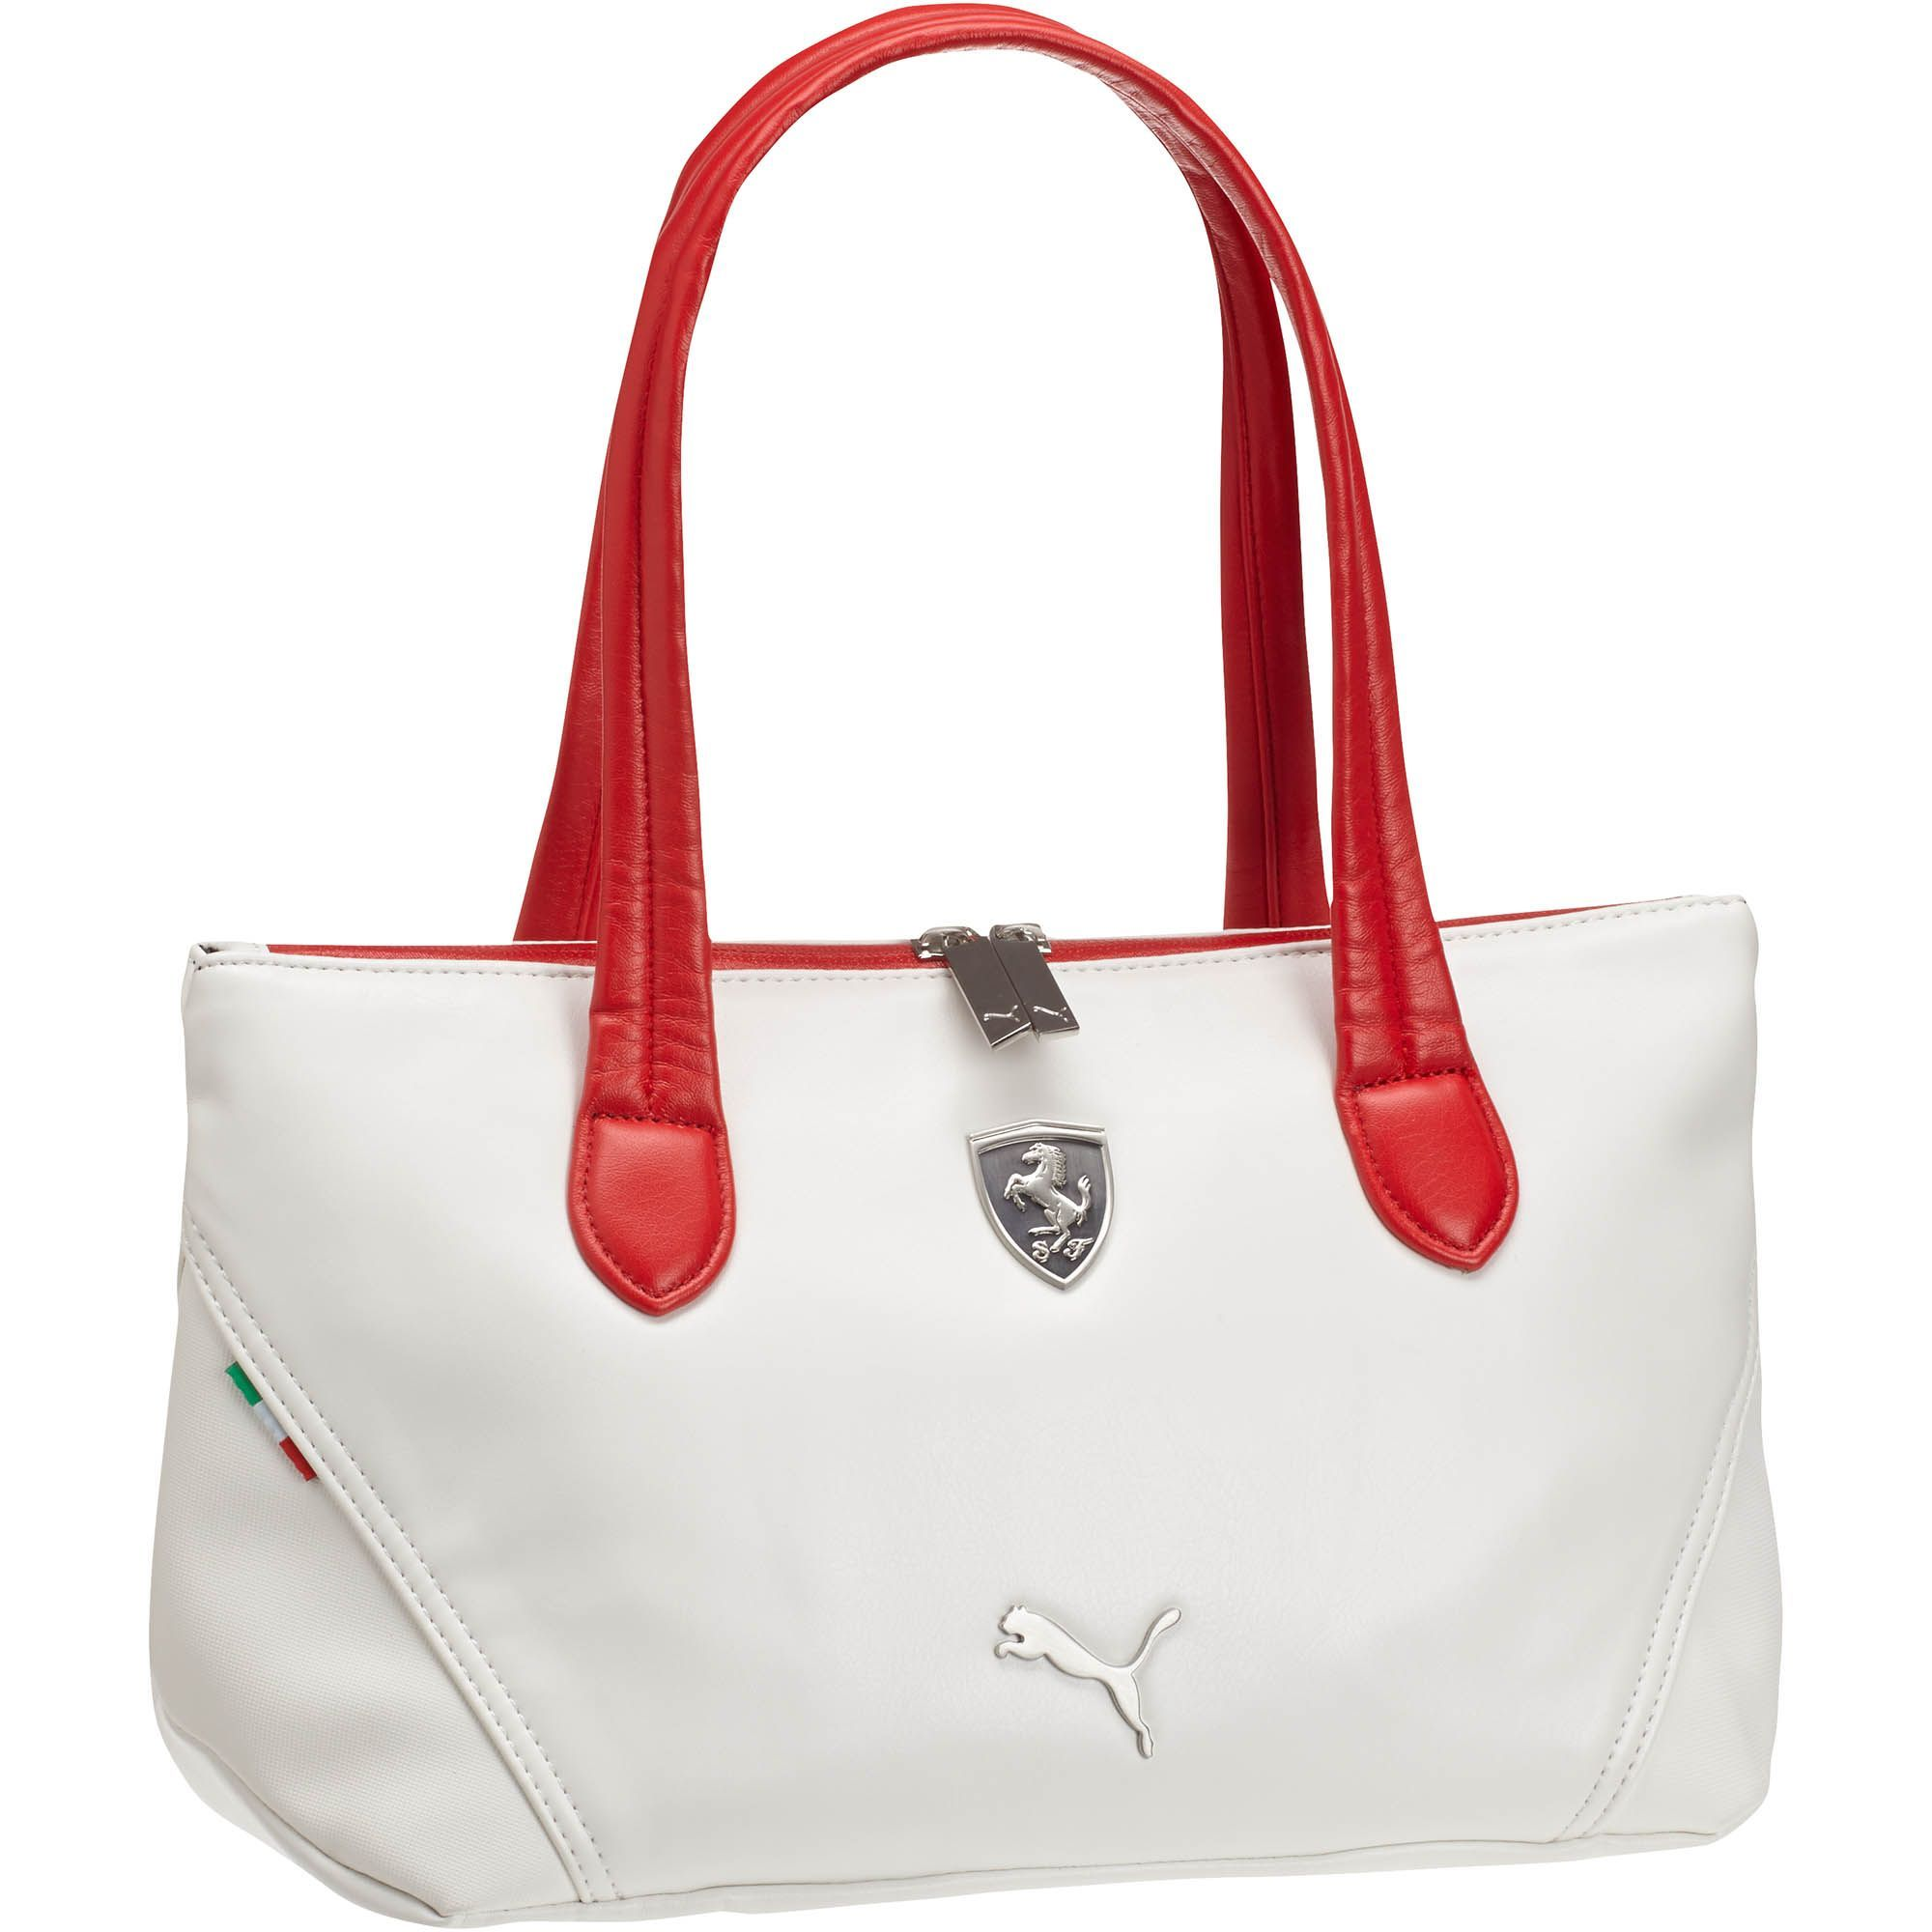 6d9ea35696 PUMA Ferrari Handbag | - from the official Puma® Online Store ...